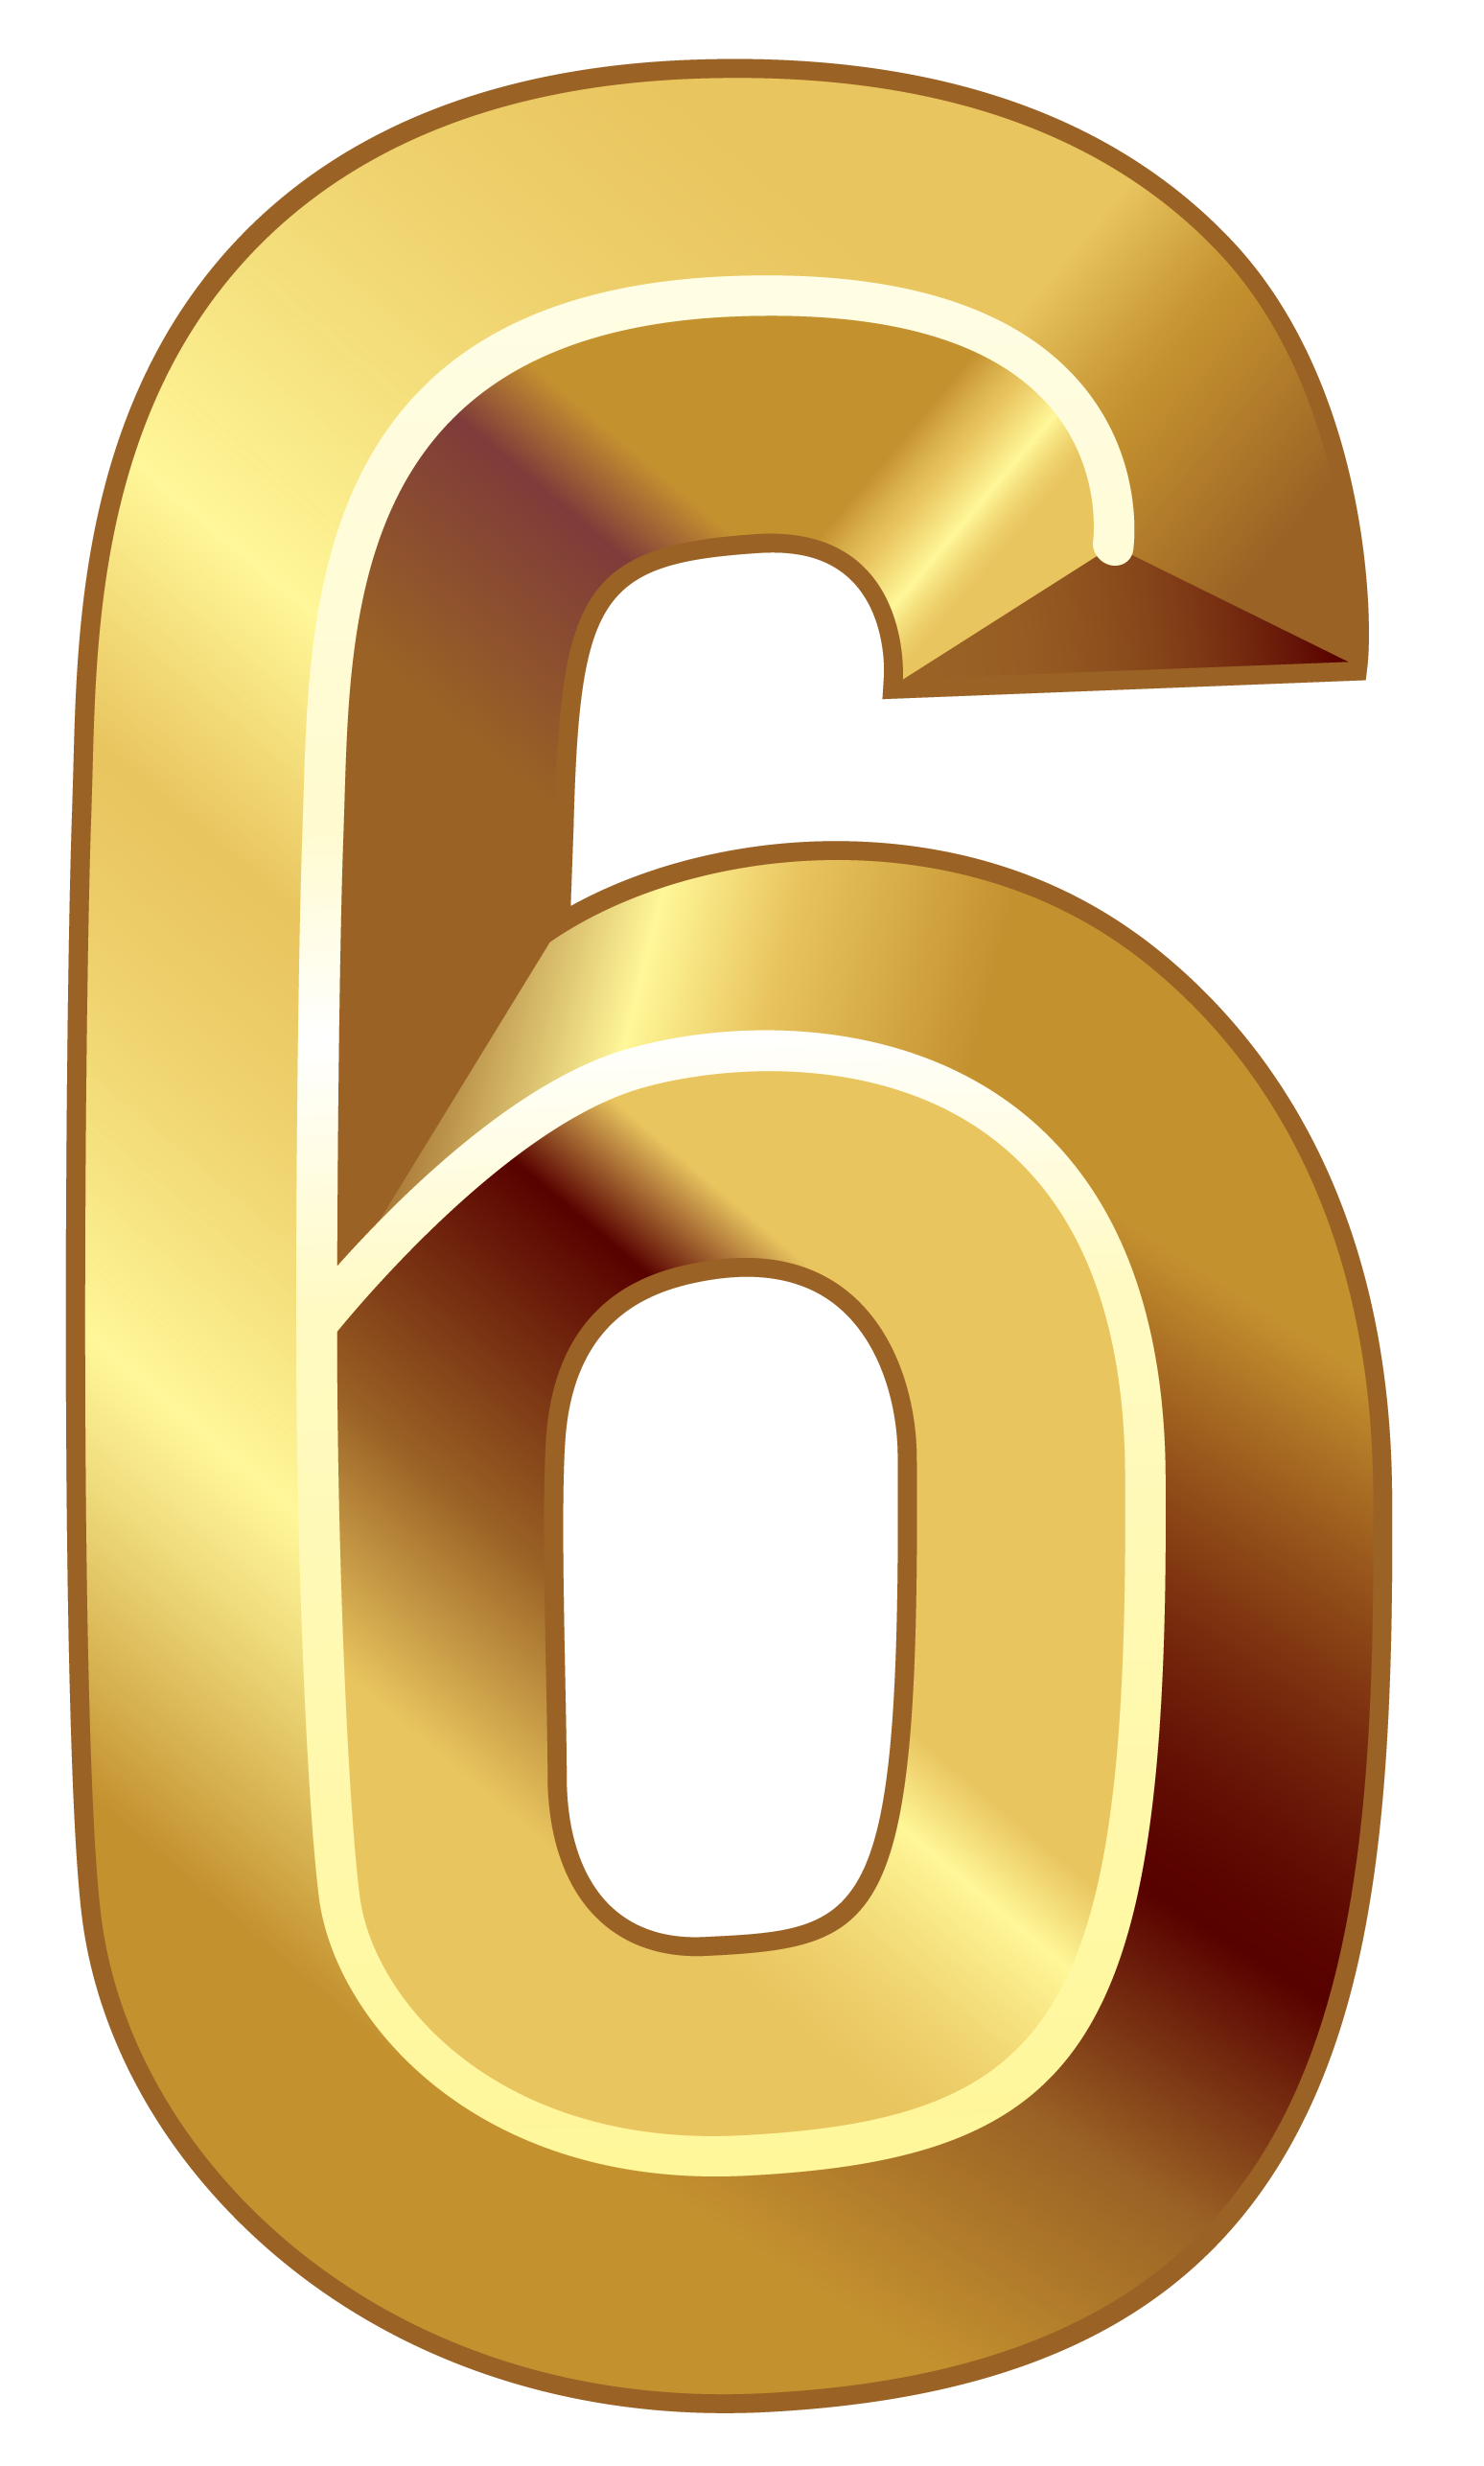 Gold Number Six PNG Clipart Image.